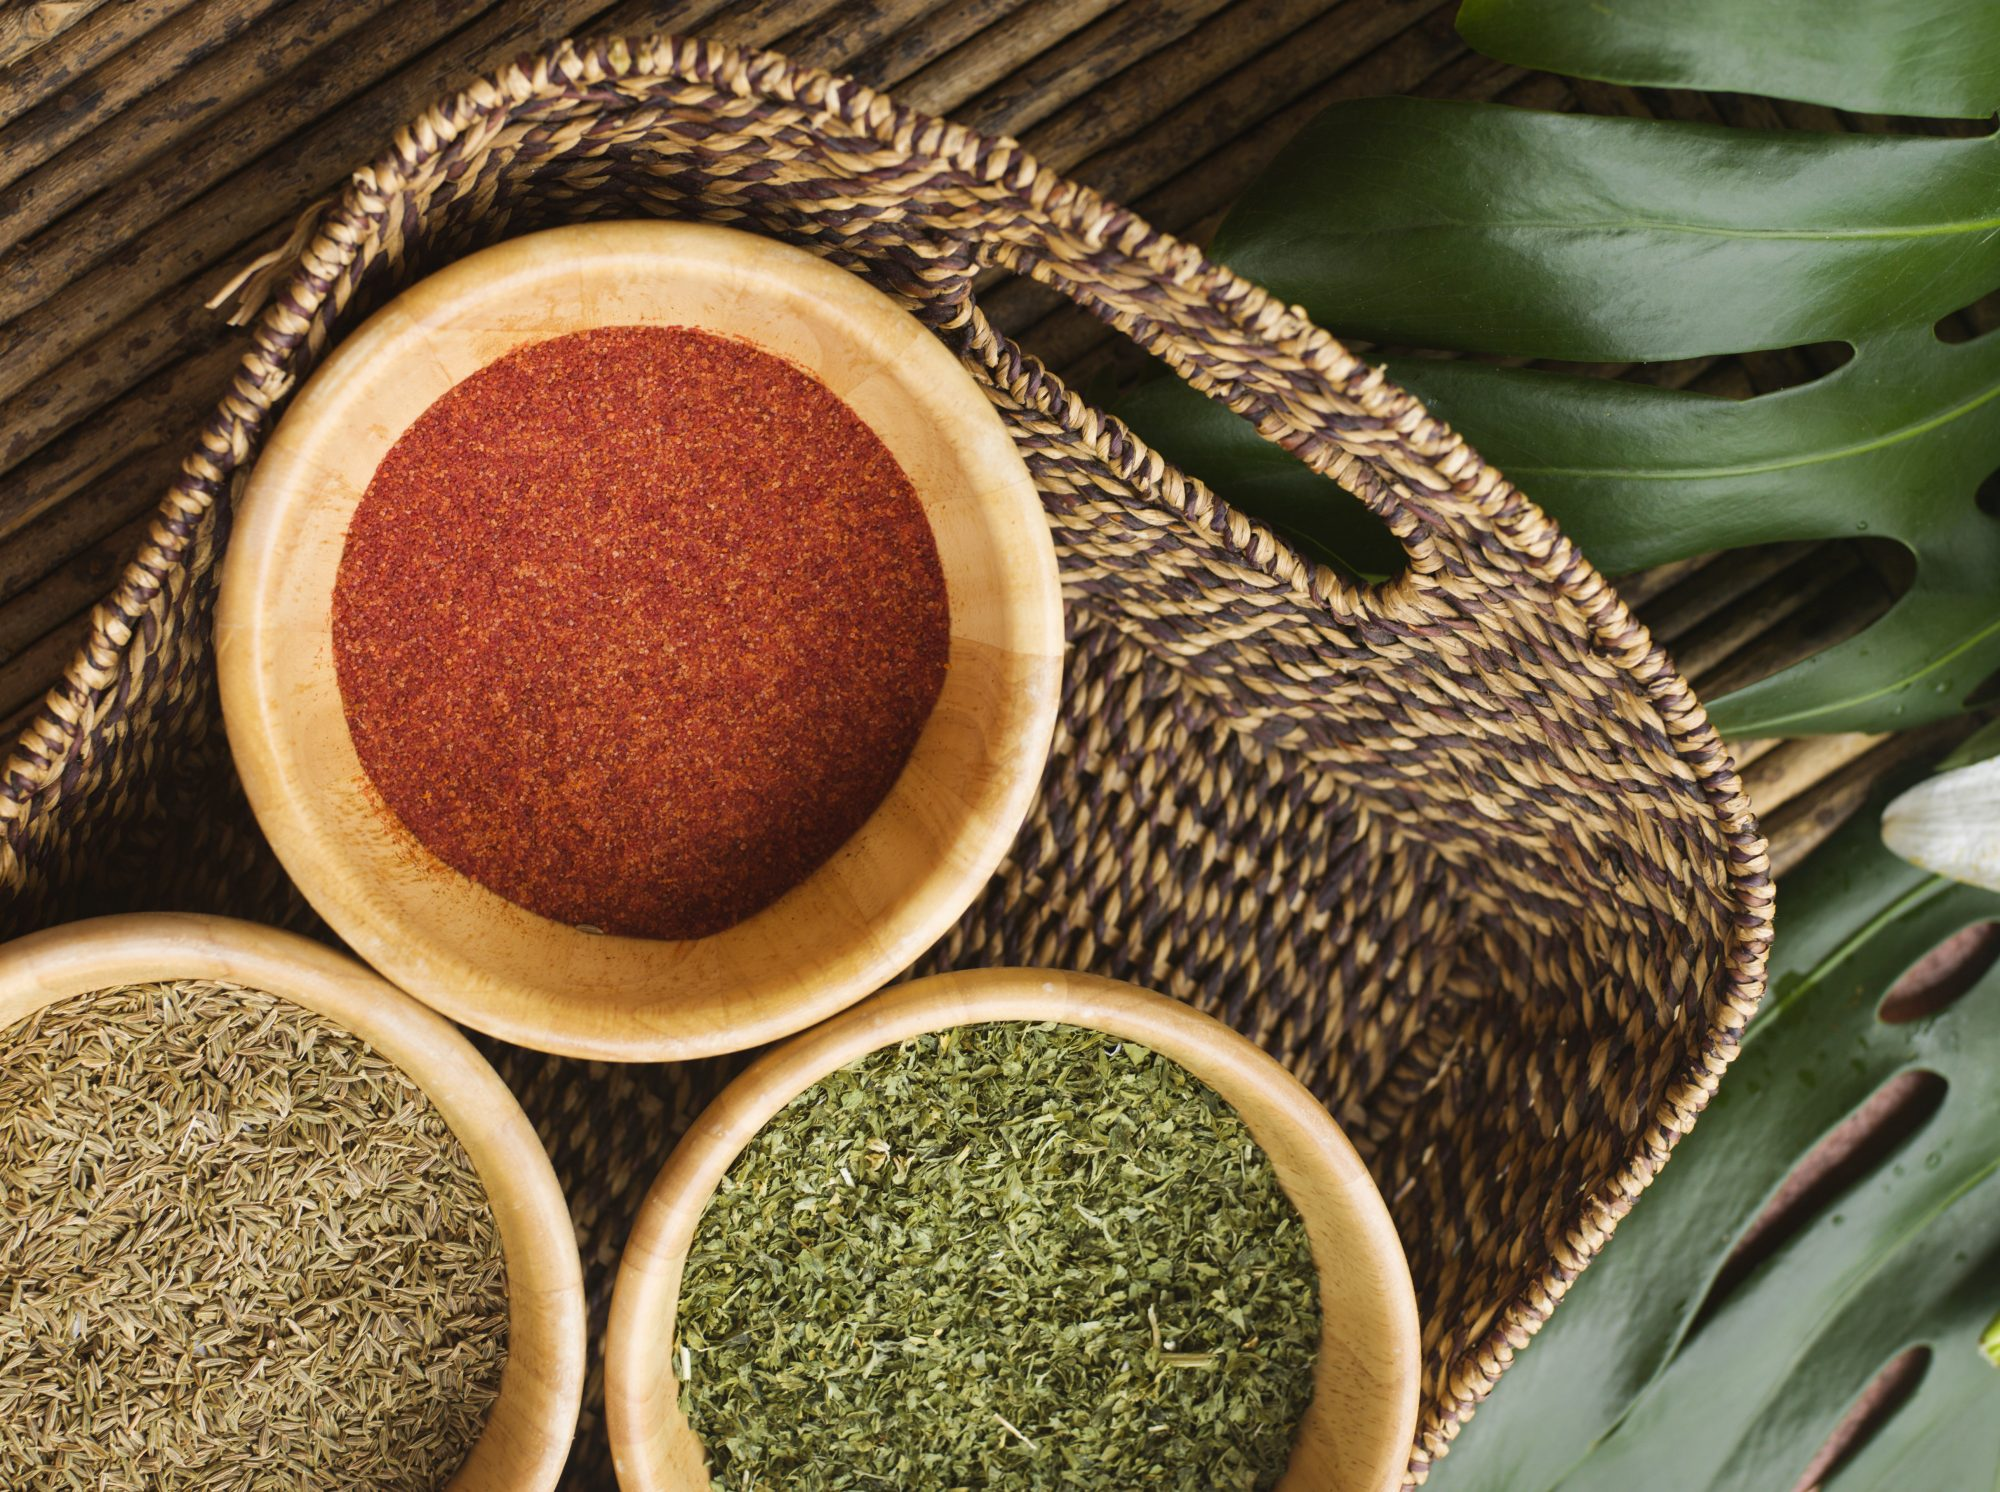 16 Spices and Seasonings You Should Have in Your Kitchen at All Times